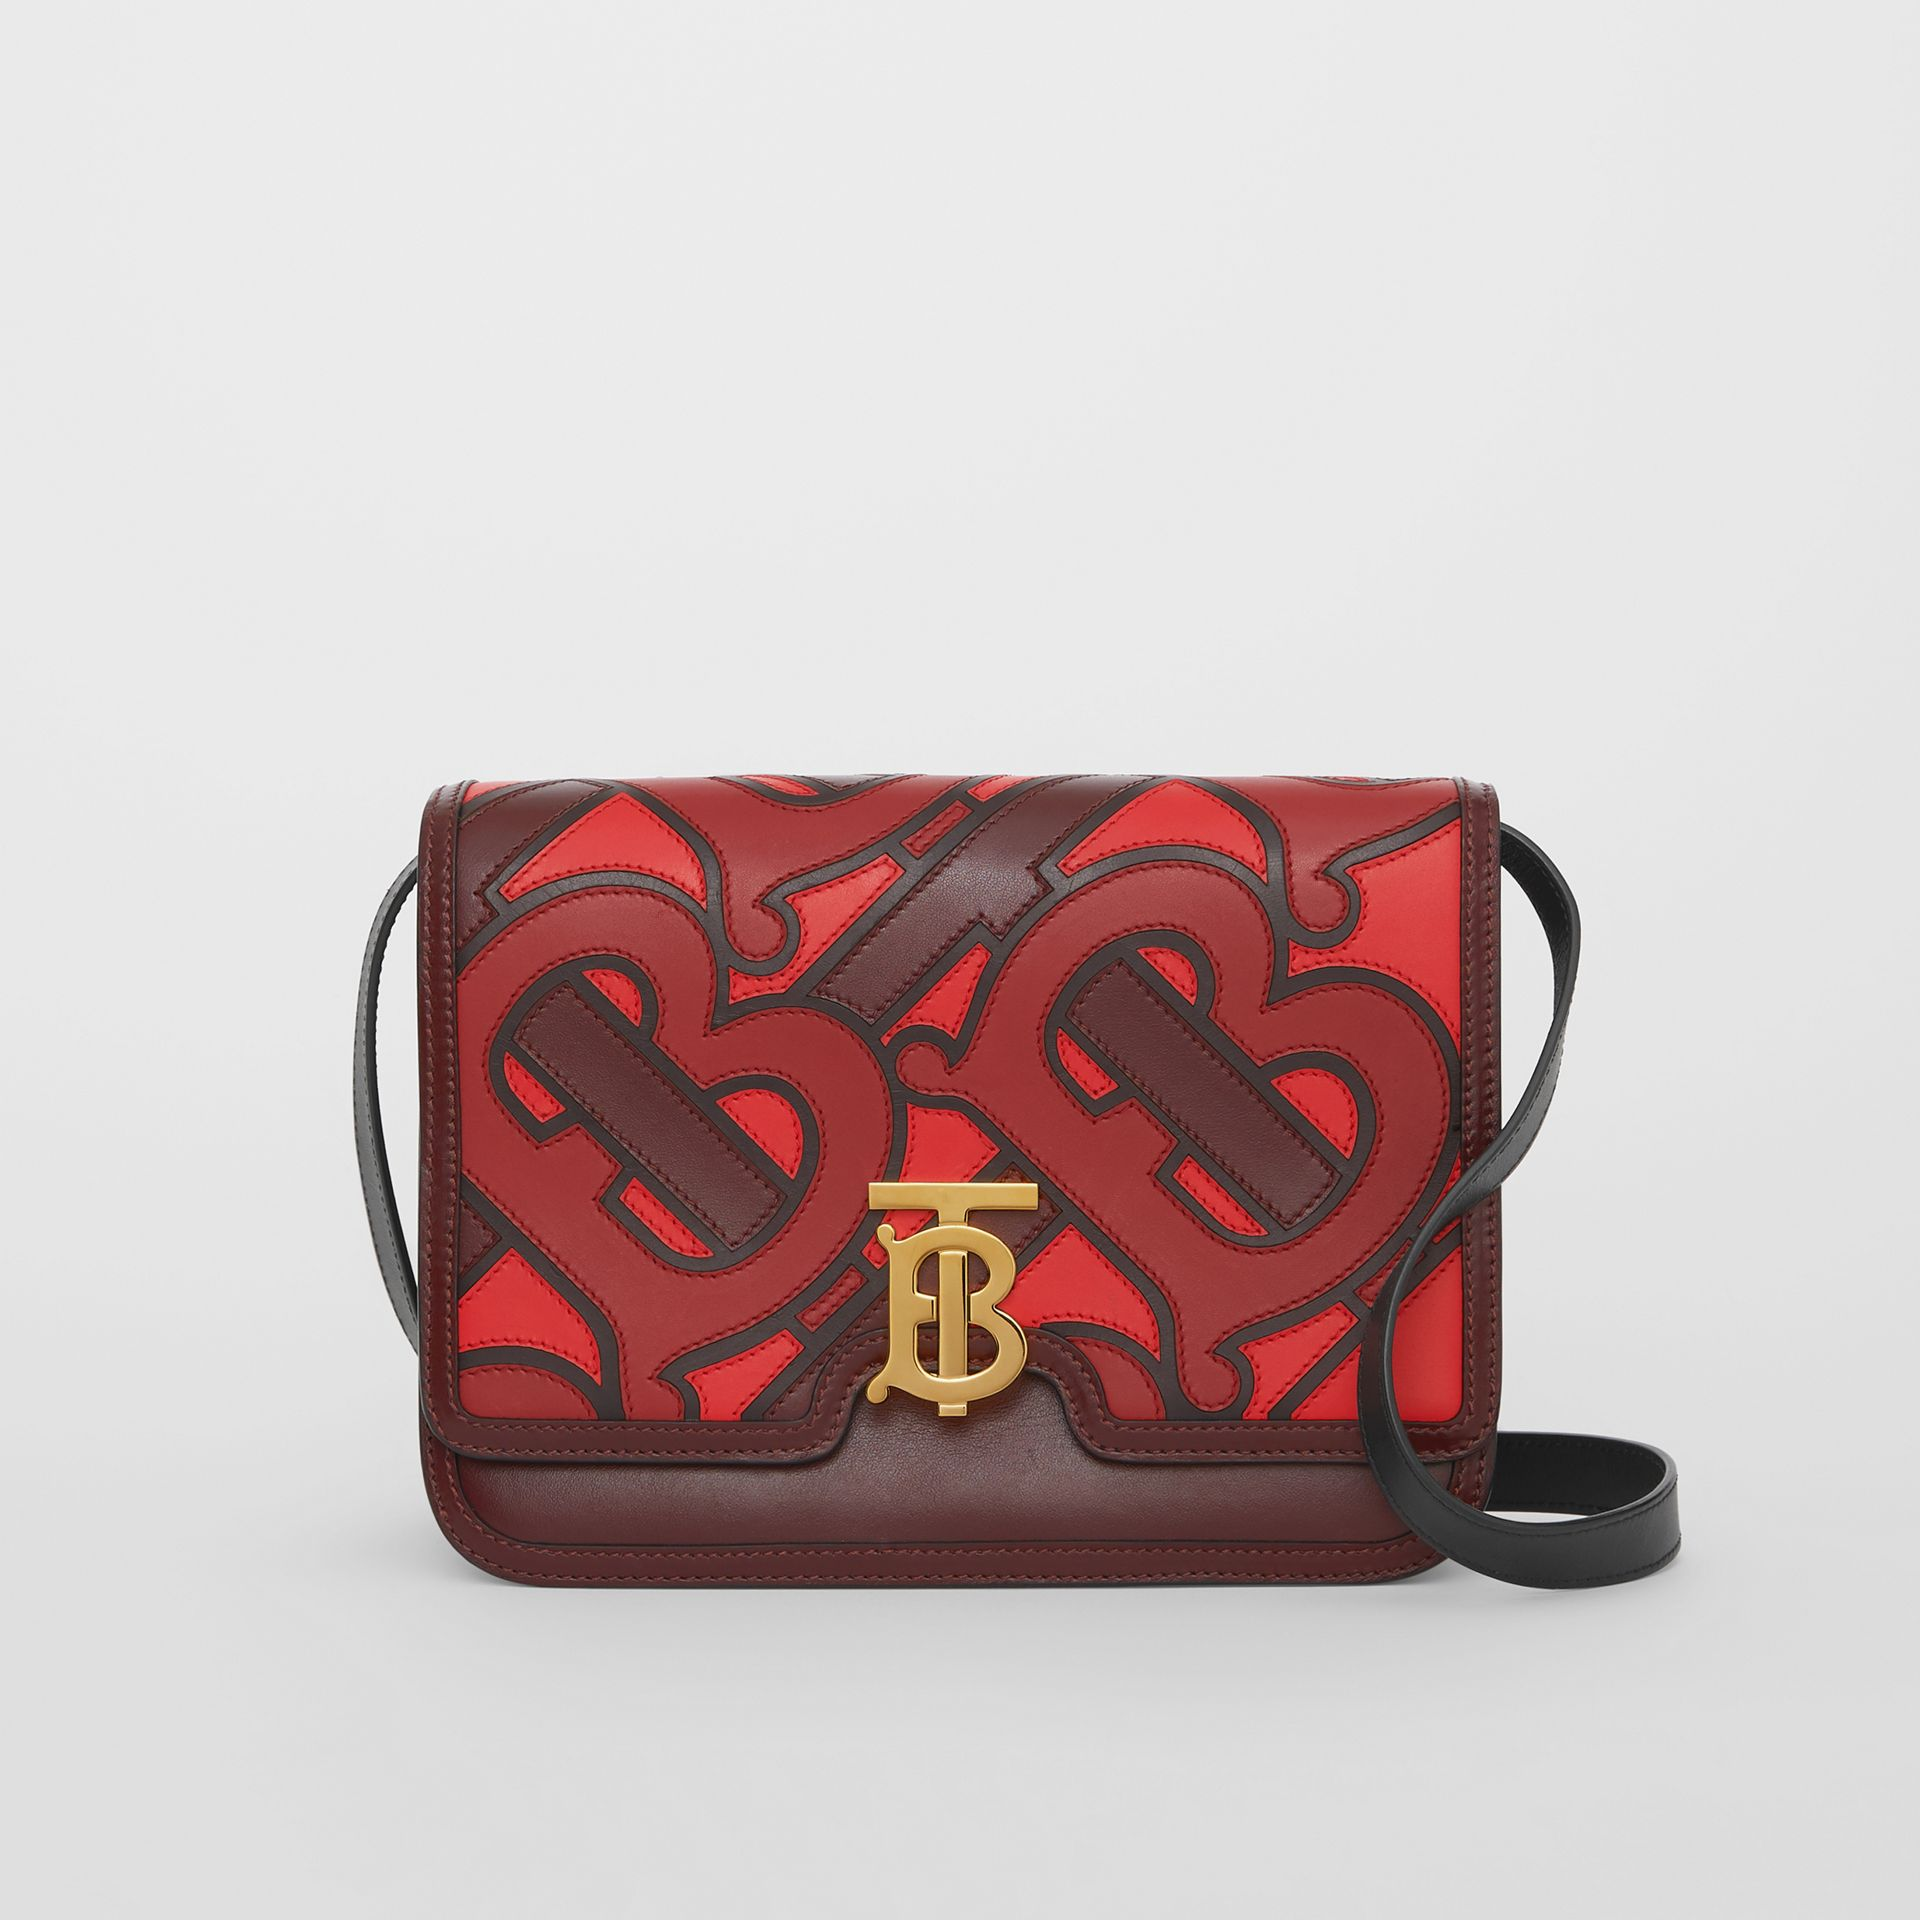 Medium Monogram Appliqué Leather TB Bag in Oxblood - Women | Burberry Canada - gallery image 0